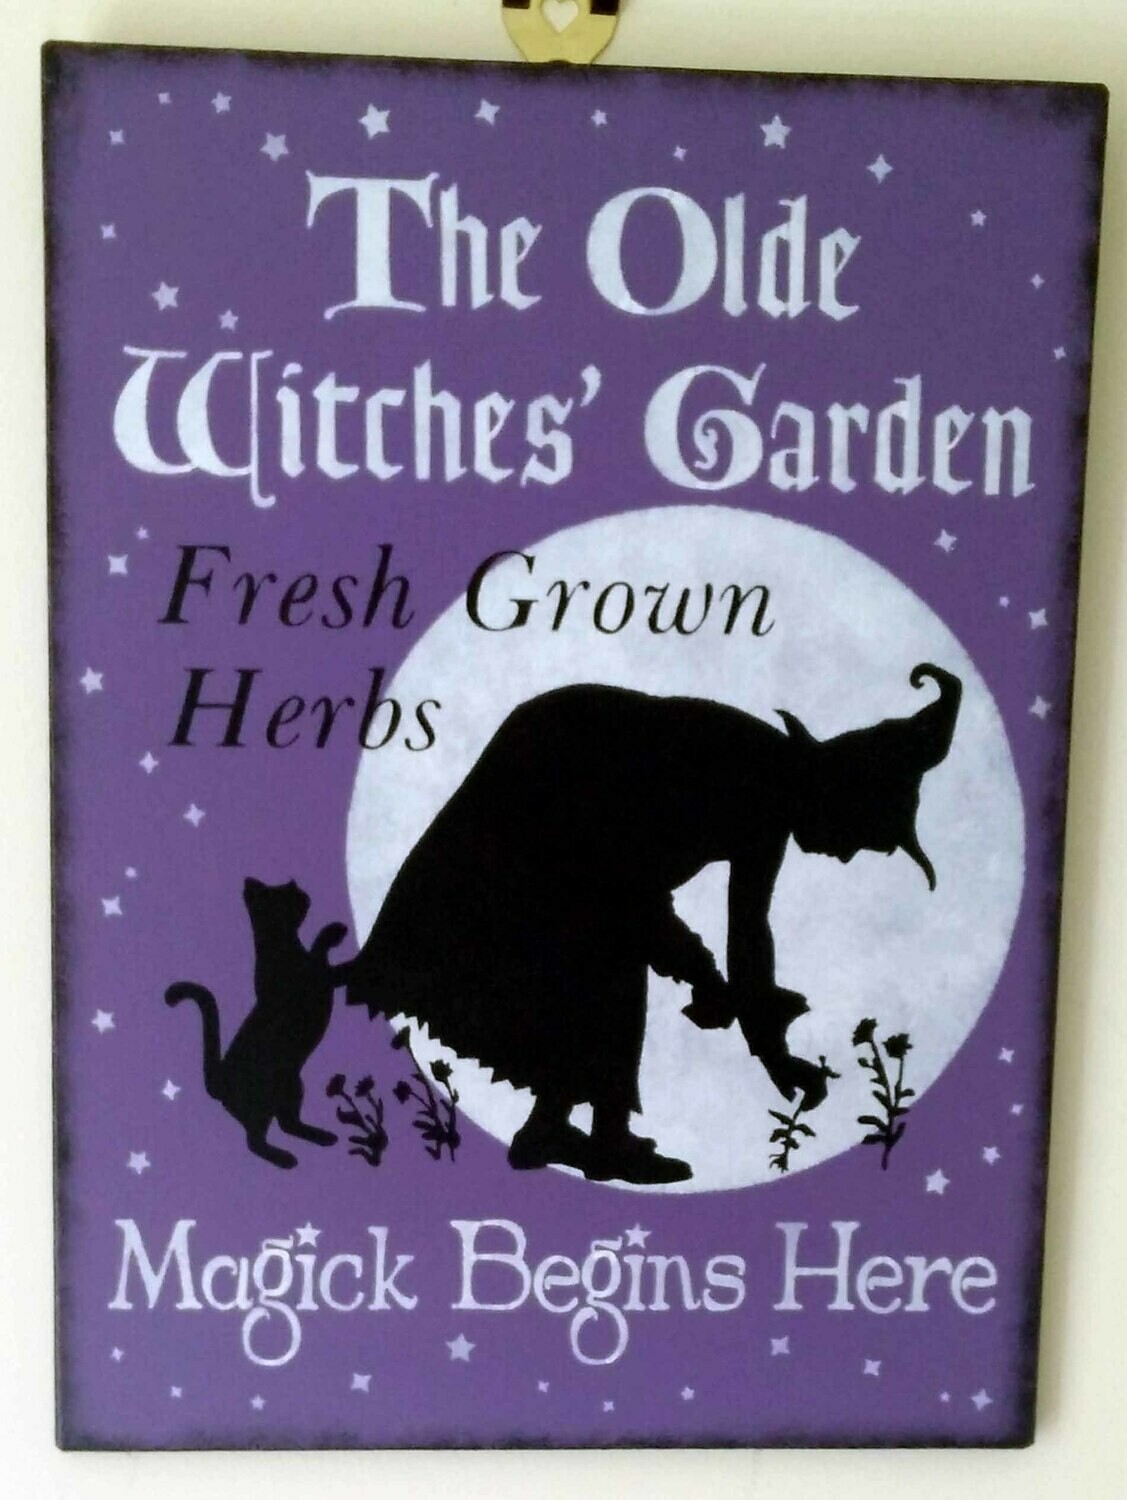 The Olde Witches Garden Wooden Sign - Purple